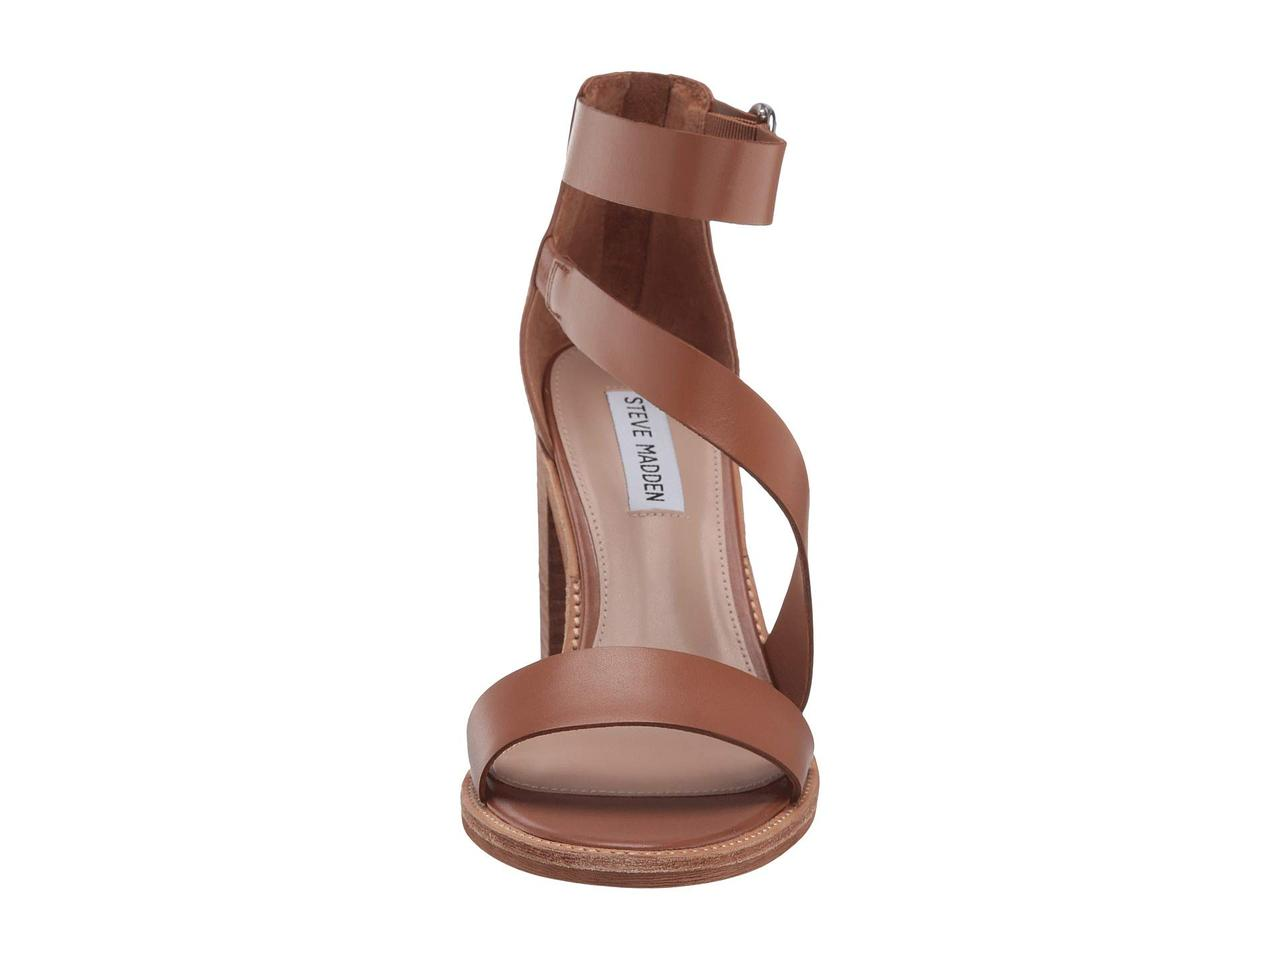 cfed27e64d ... Туфли на каблуке (Оригинал) Steve Madden Collins Heeled Sandals Cognac  Leather, фото 8